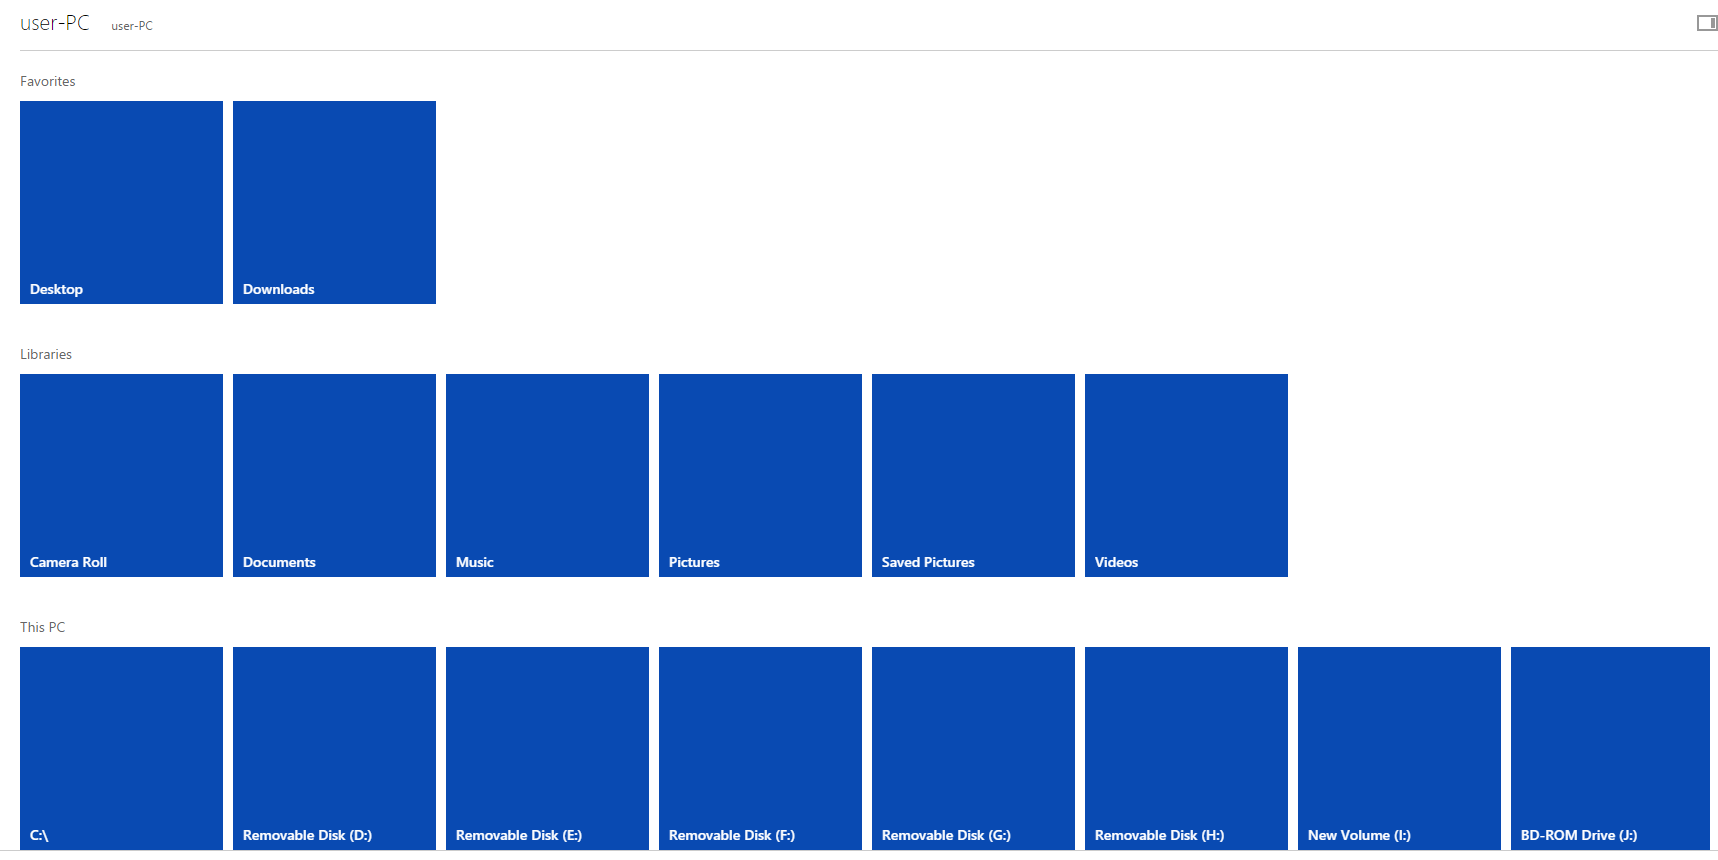 onedrive-all-files.png